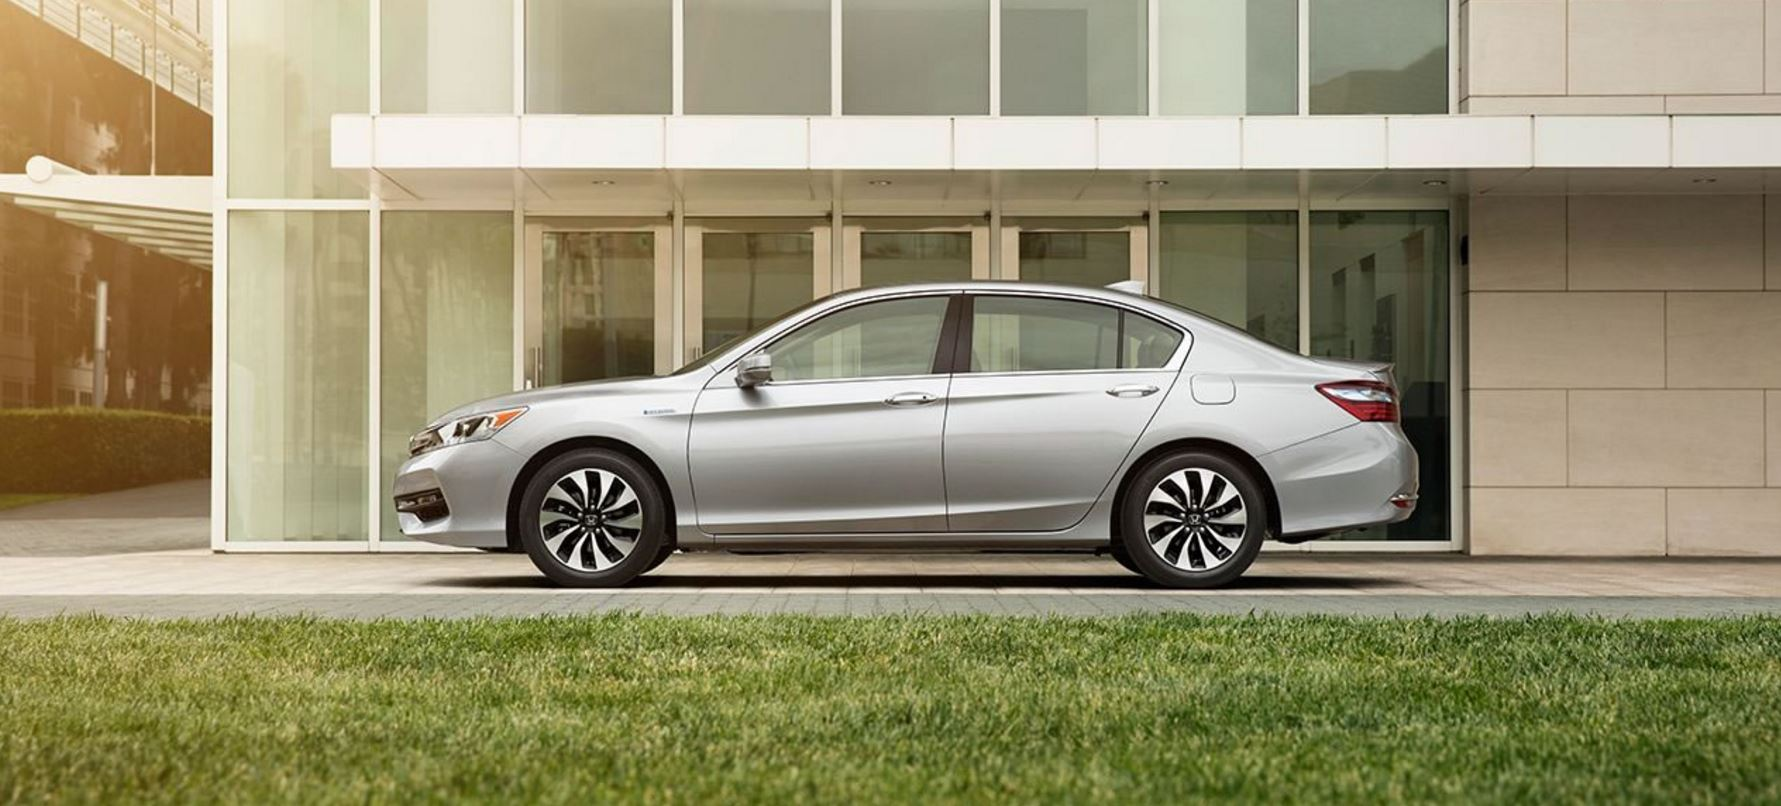 Ourisman honda of laurel more to love with all new 2017 for Ourisman honda of laurel